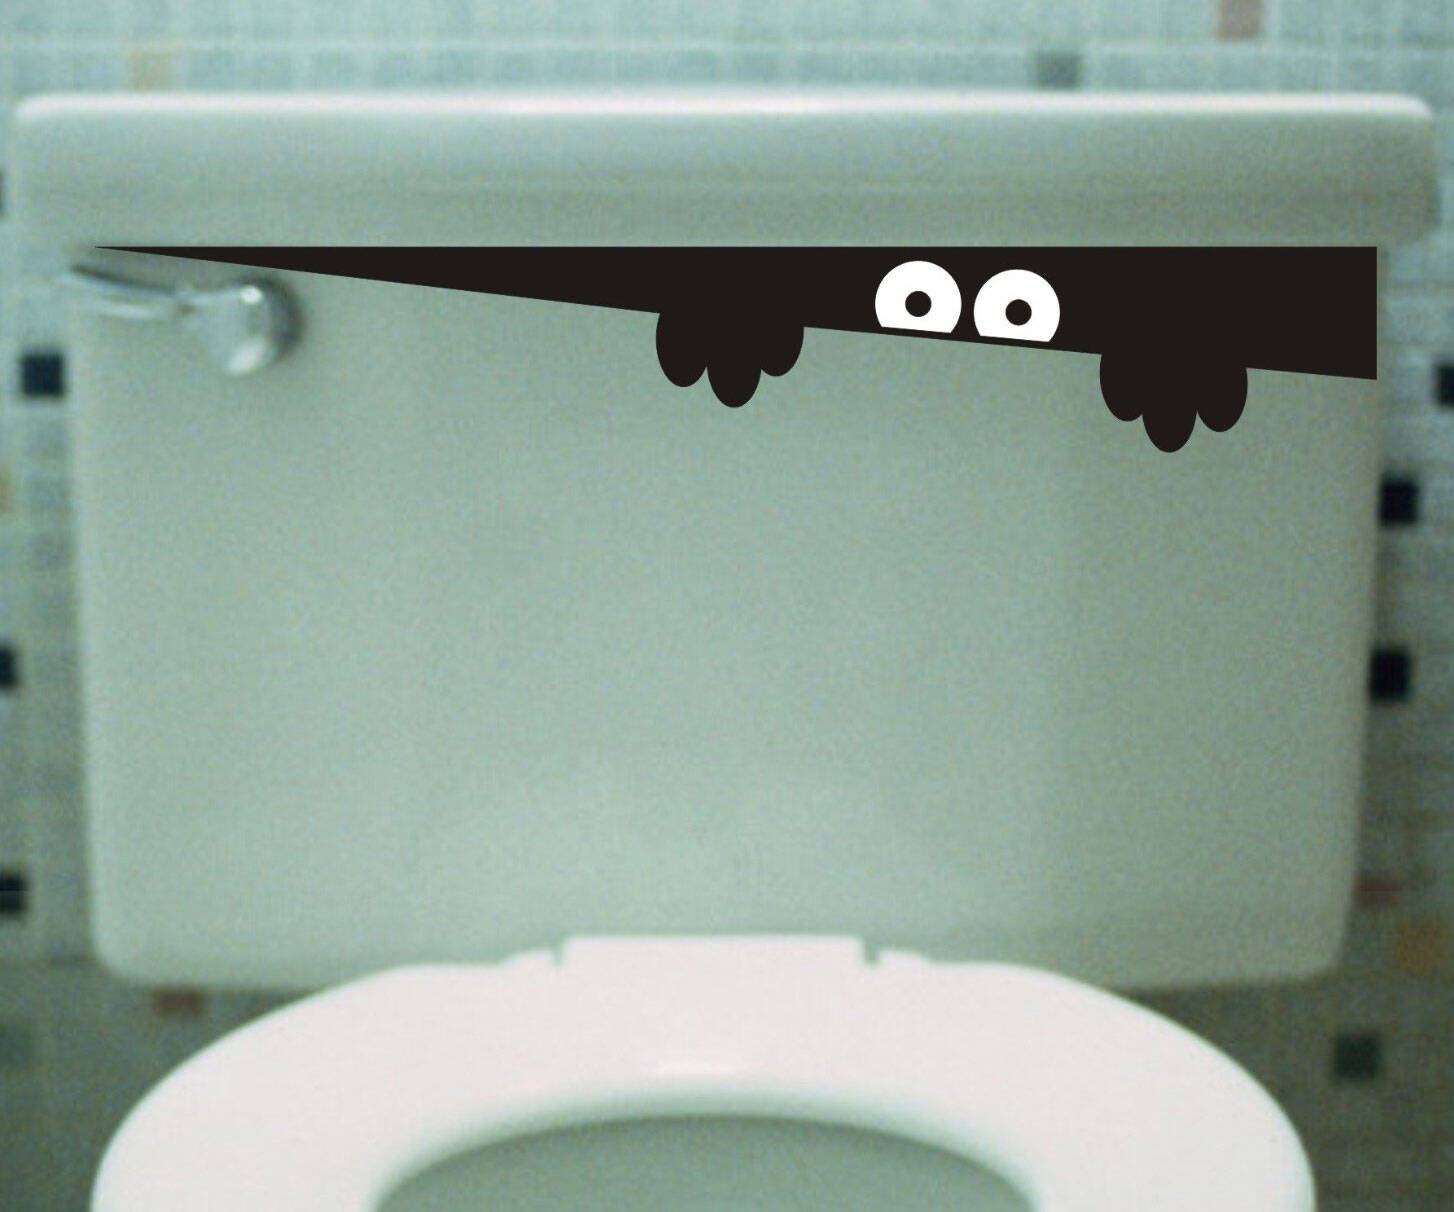 Peeking Toilet Monster Decal - http://coolthings.us